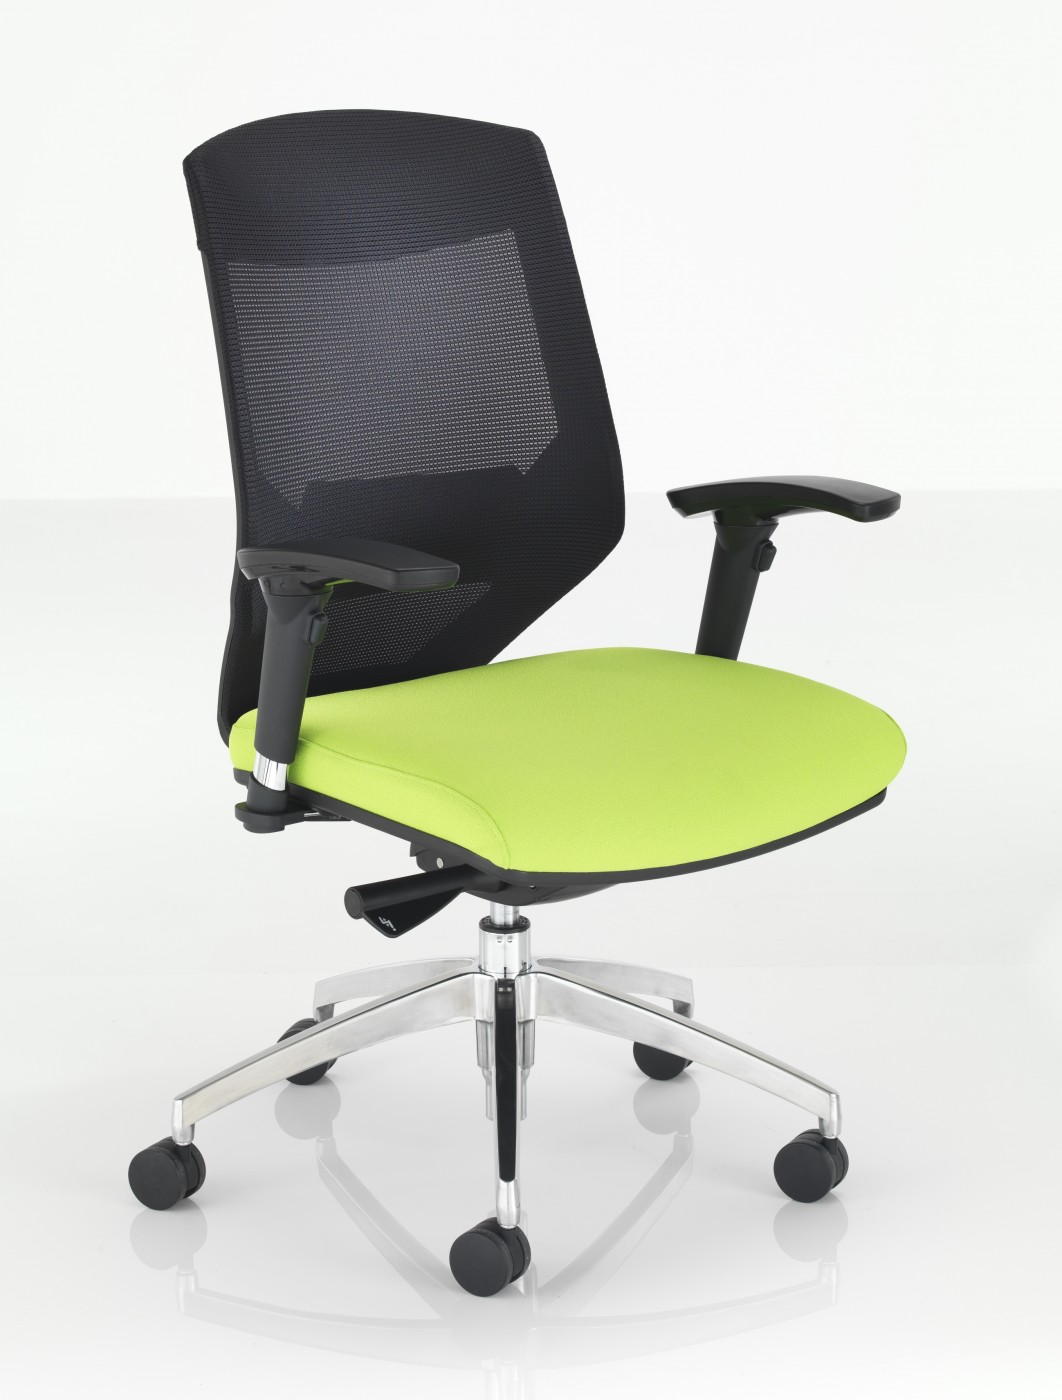 Tc vogue mesh office chair ch2622bk 121 office furniture for Office furniture chairs